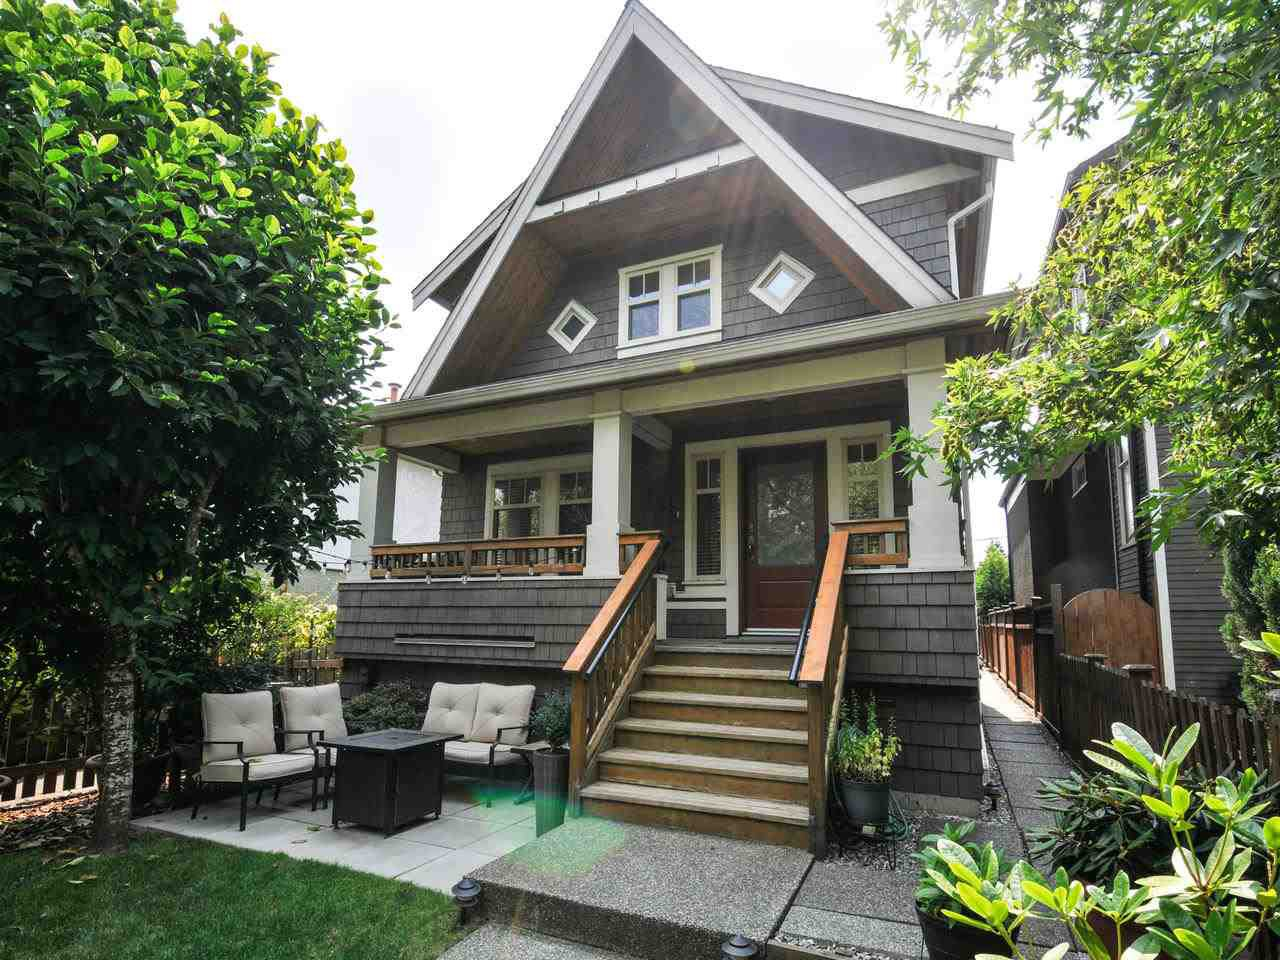 Main Photo: 1252 E 11TH Avenue in Vancouver: Mount Pleasant VE 1/2 Duplex for sale (Vancouver East)  : MLS®# R2317312